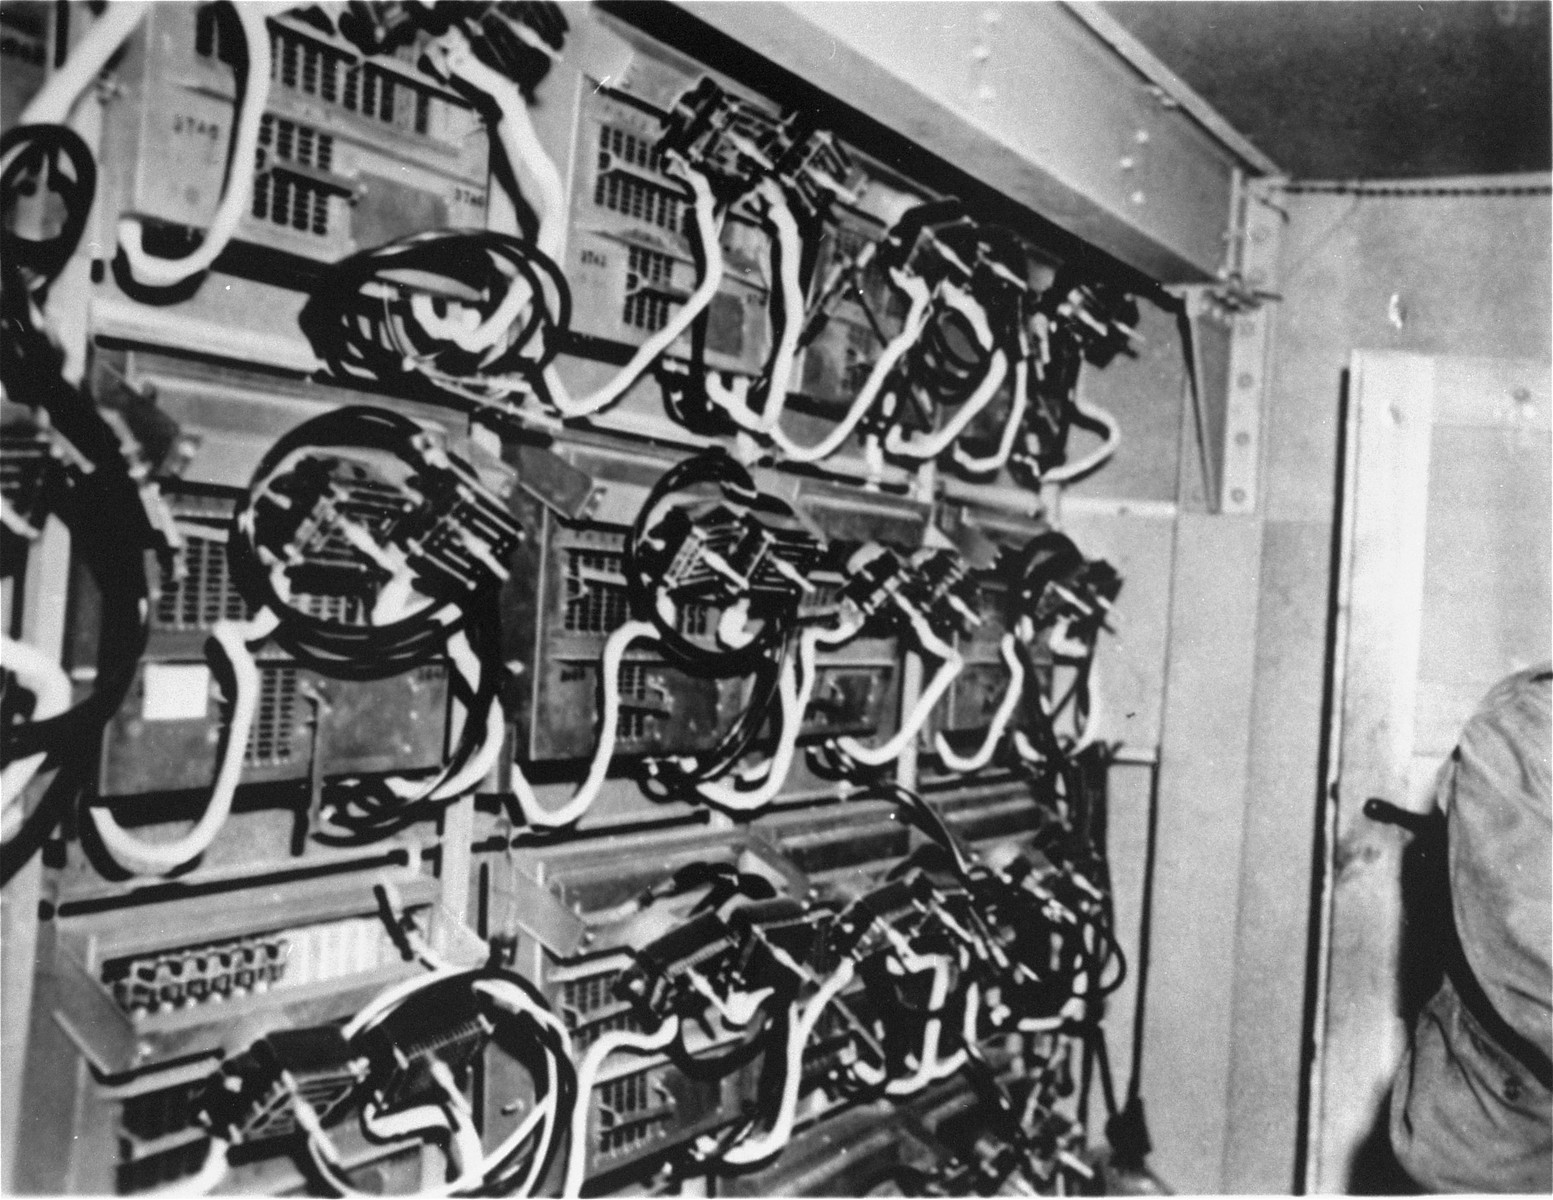 Central junction boxes on a test board in the central test room of the underground factory at Dora-Mittelbau.